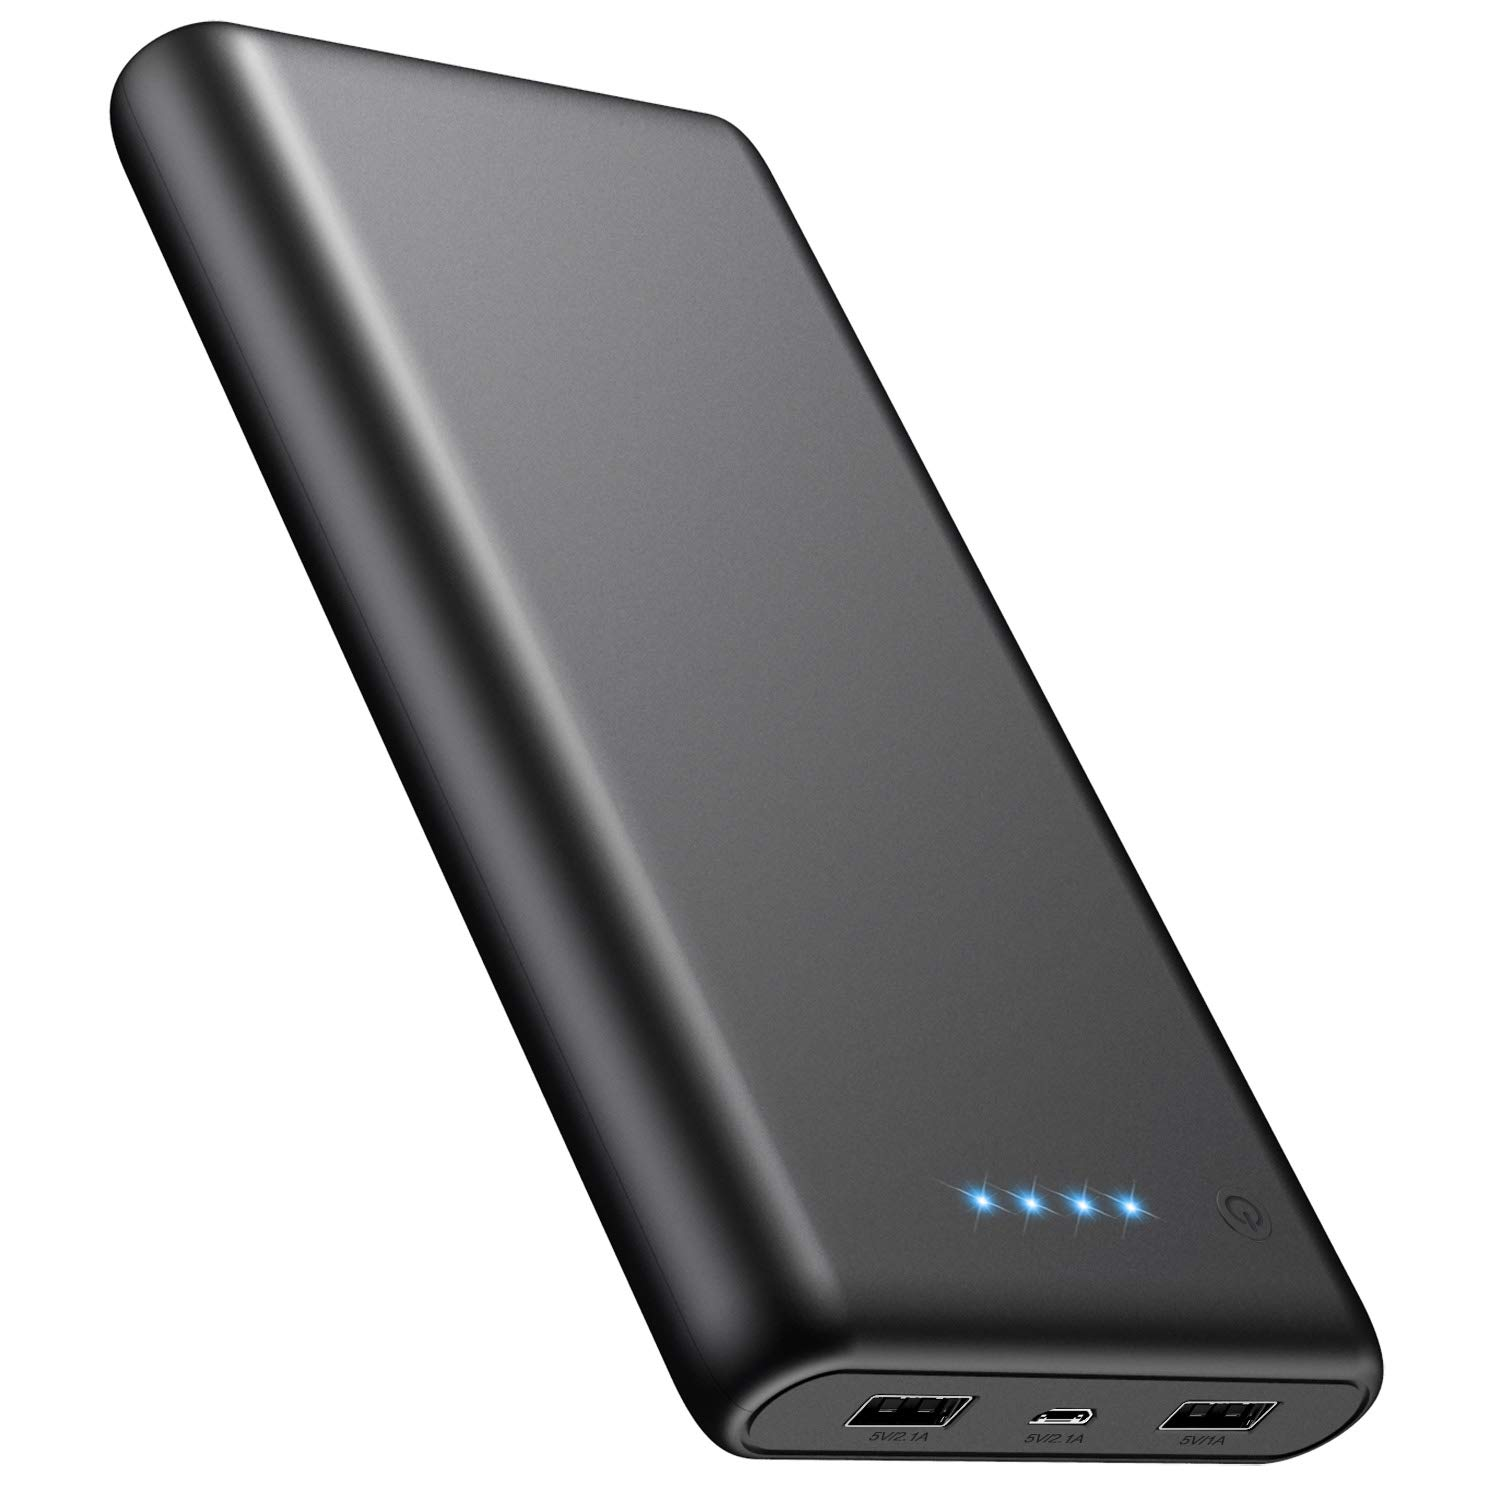 Portable Charger Power Bank 24800mAh High Capacity External Battery Smaller Size Lighter Weight Backup Battery Compatible with Smart Phone, Android Phone, Tablet and More by Gixvdcu